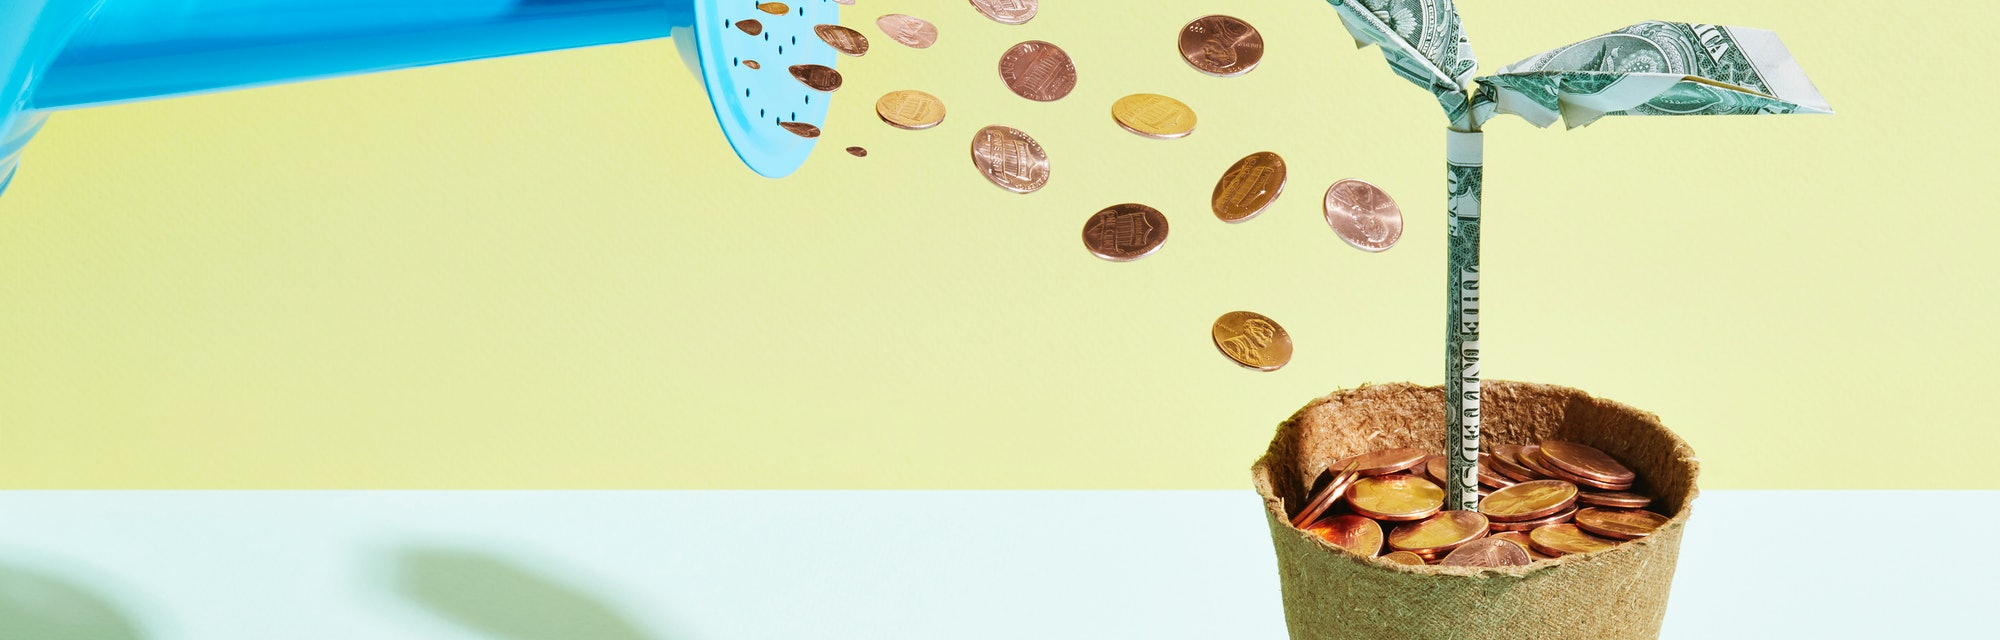 The Preeminent Guide ToFollow These 2 Financial Strategies For A Better 2021 - The ...